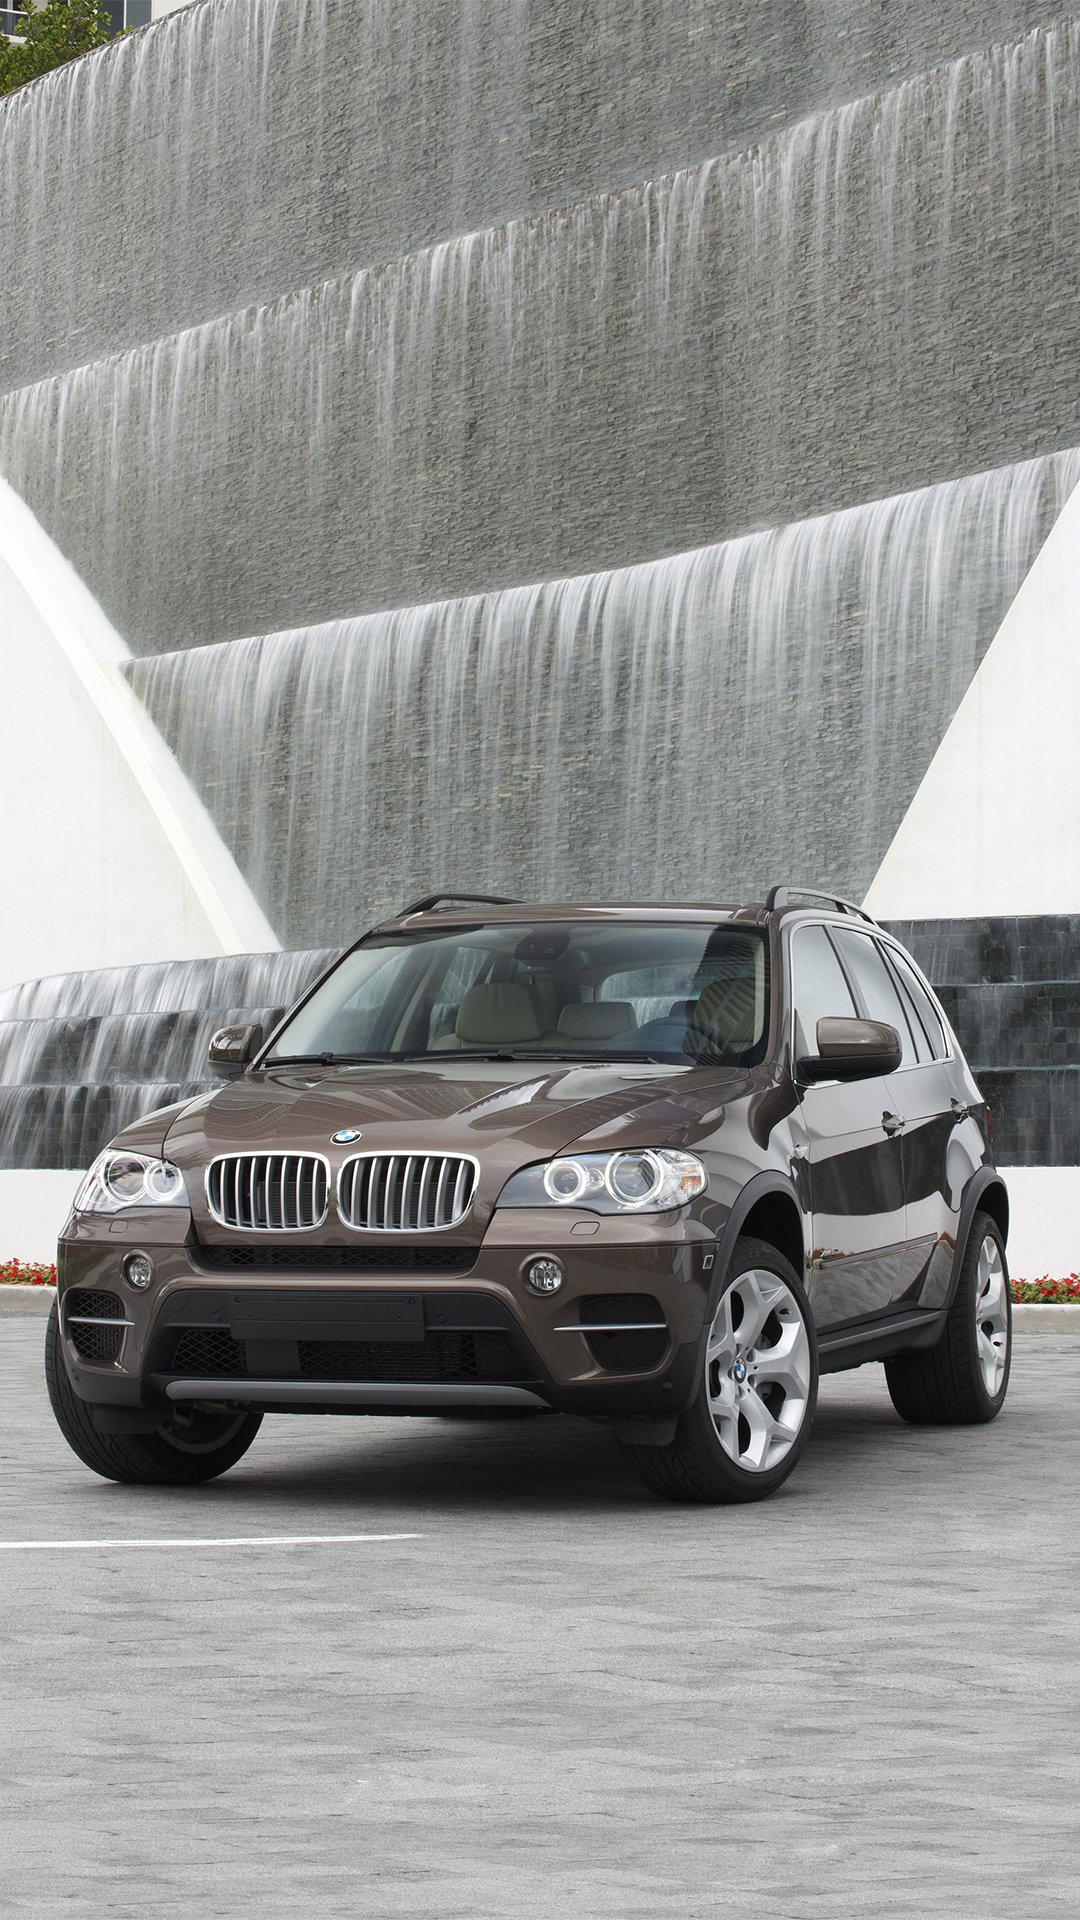 2011 BMW X5 htc one wallpaper